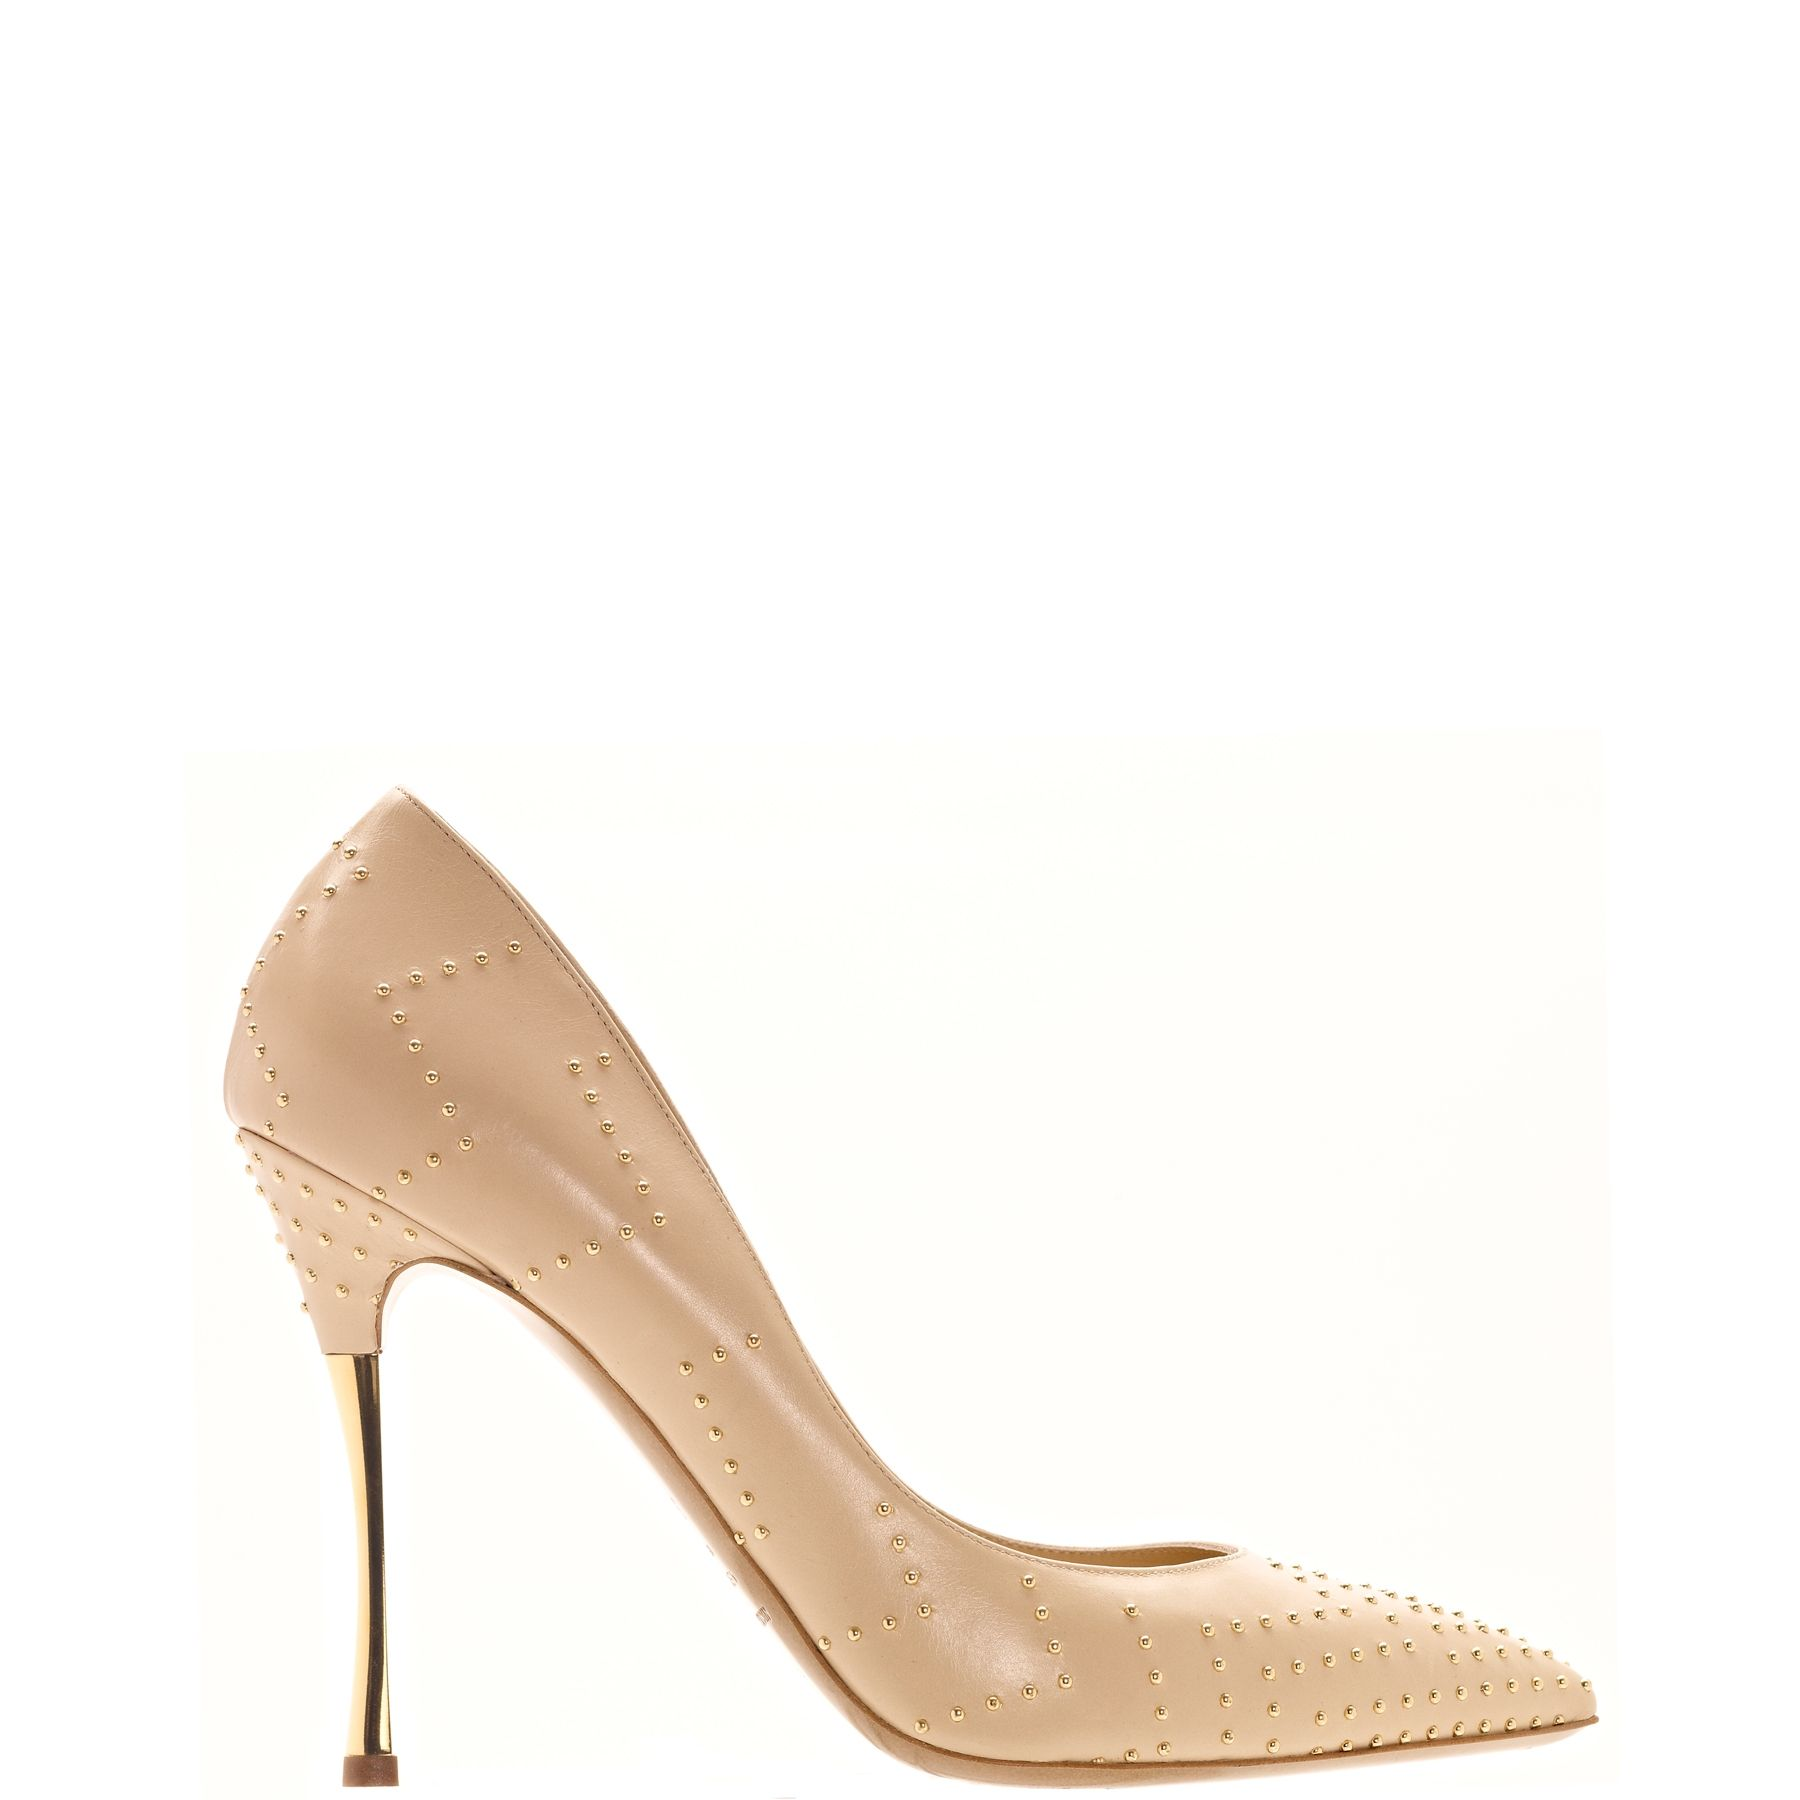 The A to Z of Shoe Shopping: K is for Nicholas Kirkwood  - luscious studded detailed heel, what a perfect shape, this pin - fall 2013